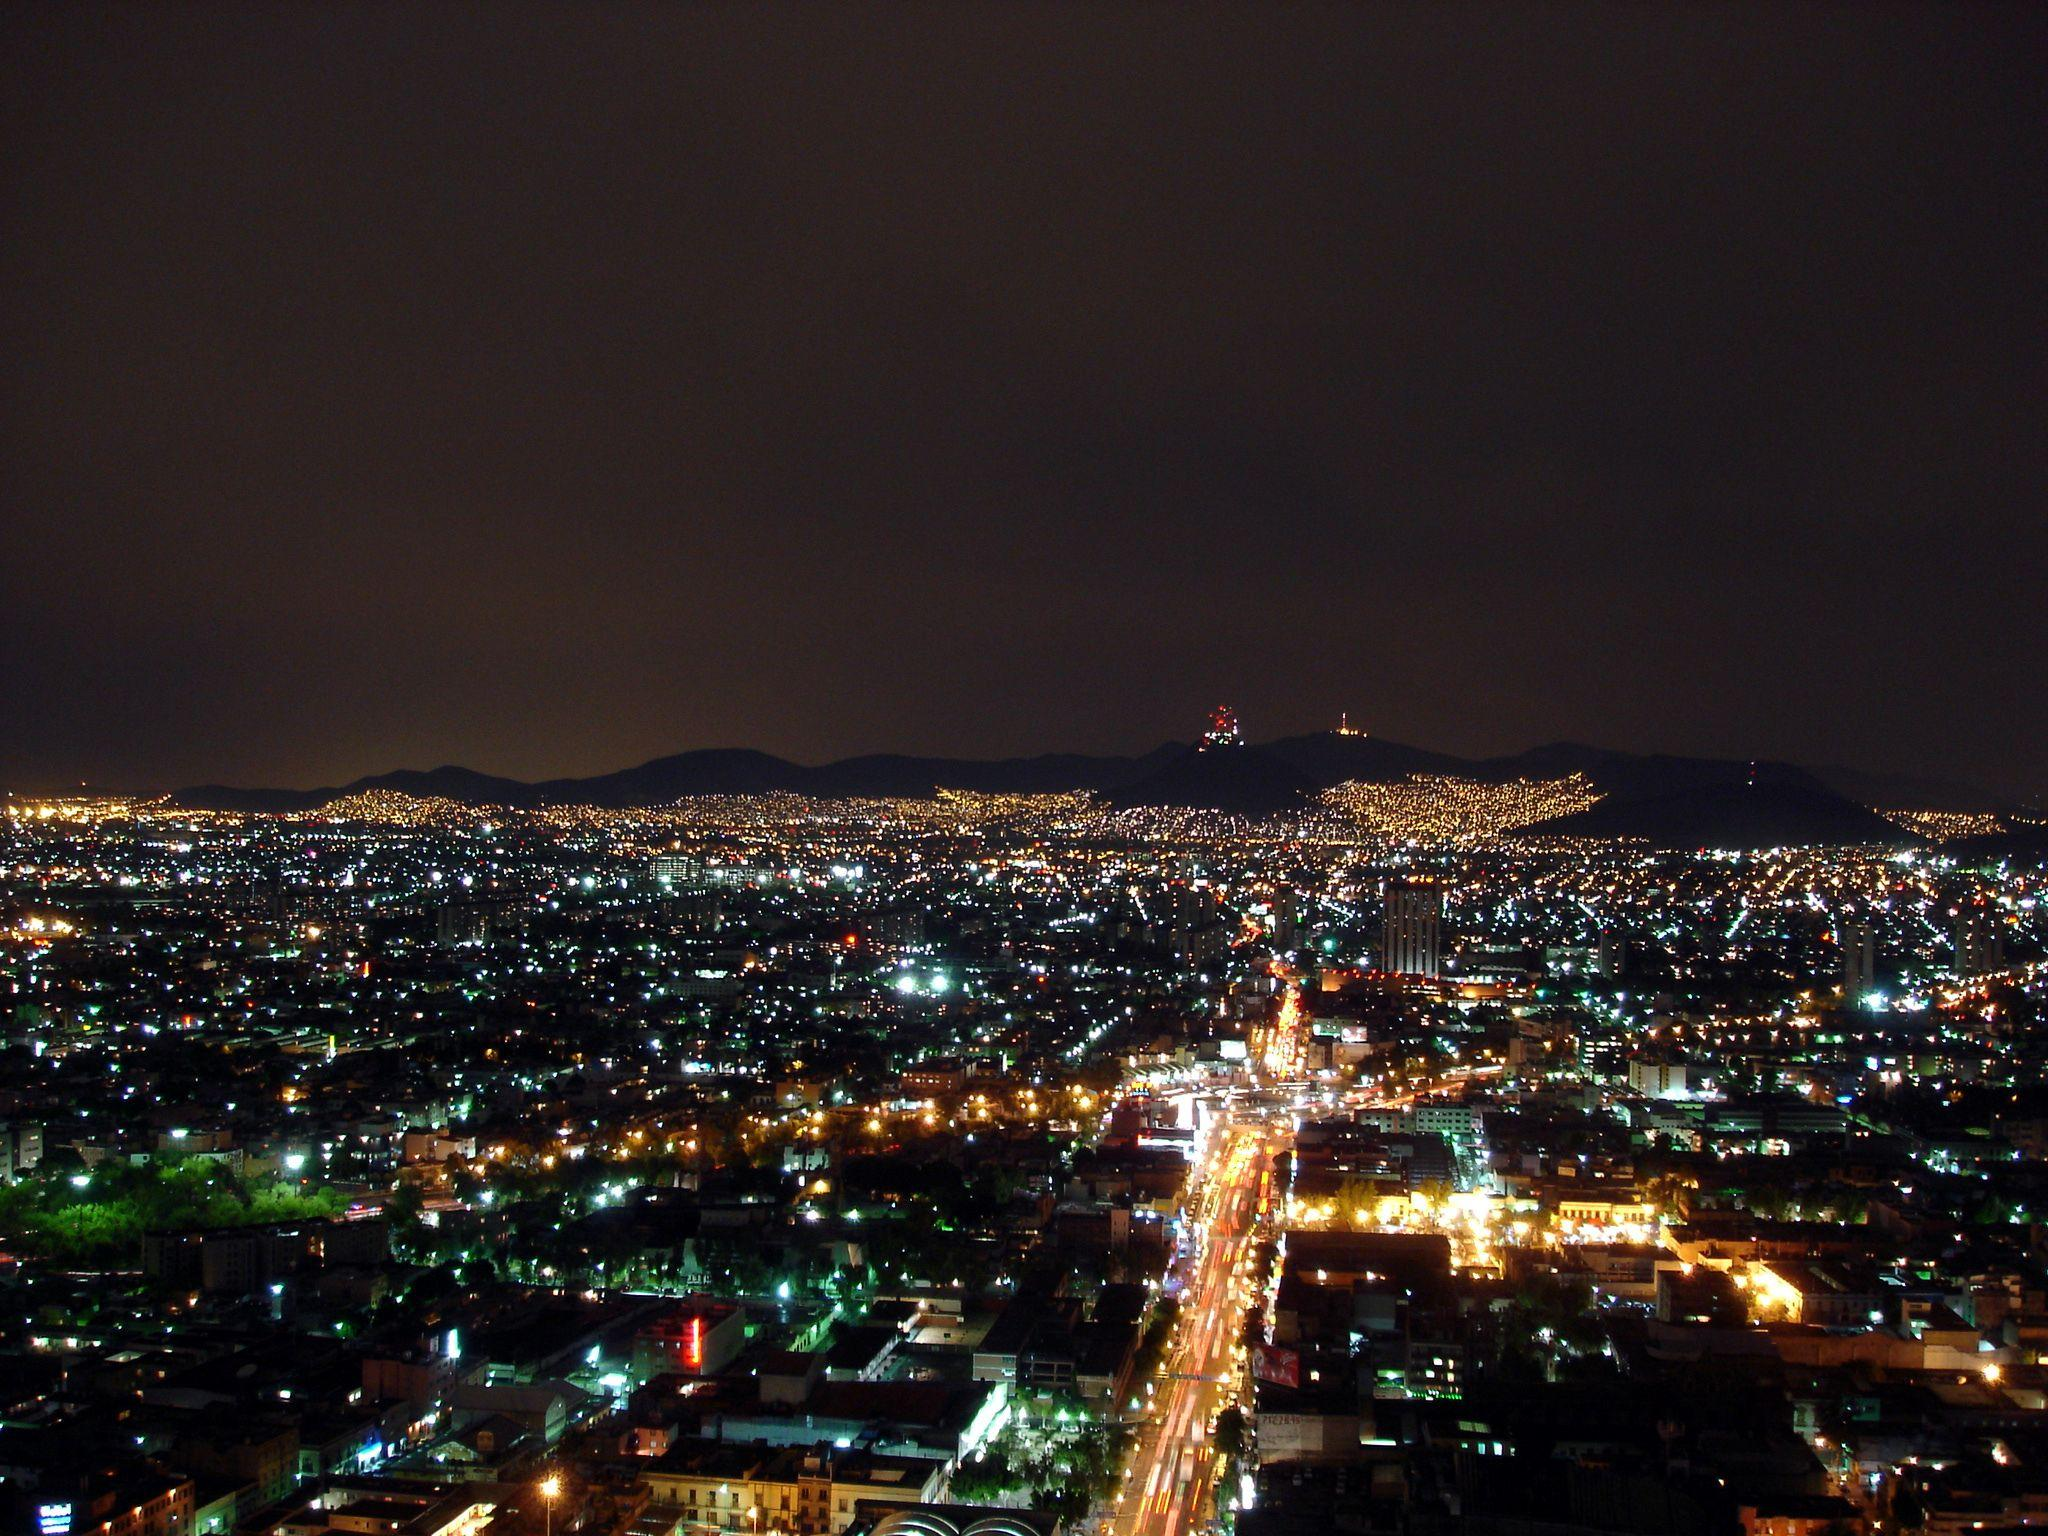 Mexico City Wallpapers, Cool Mexico City Backgrounds